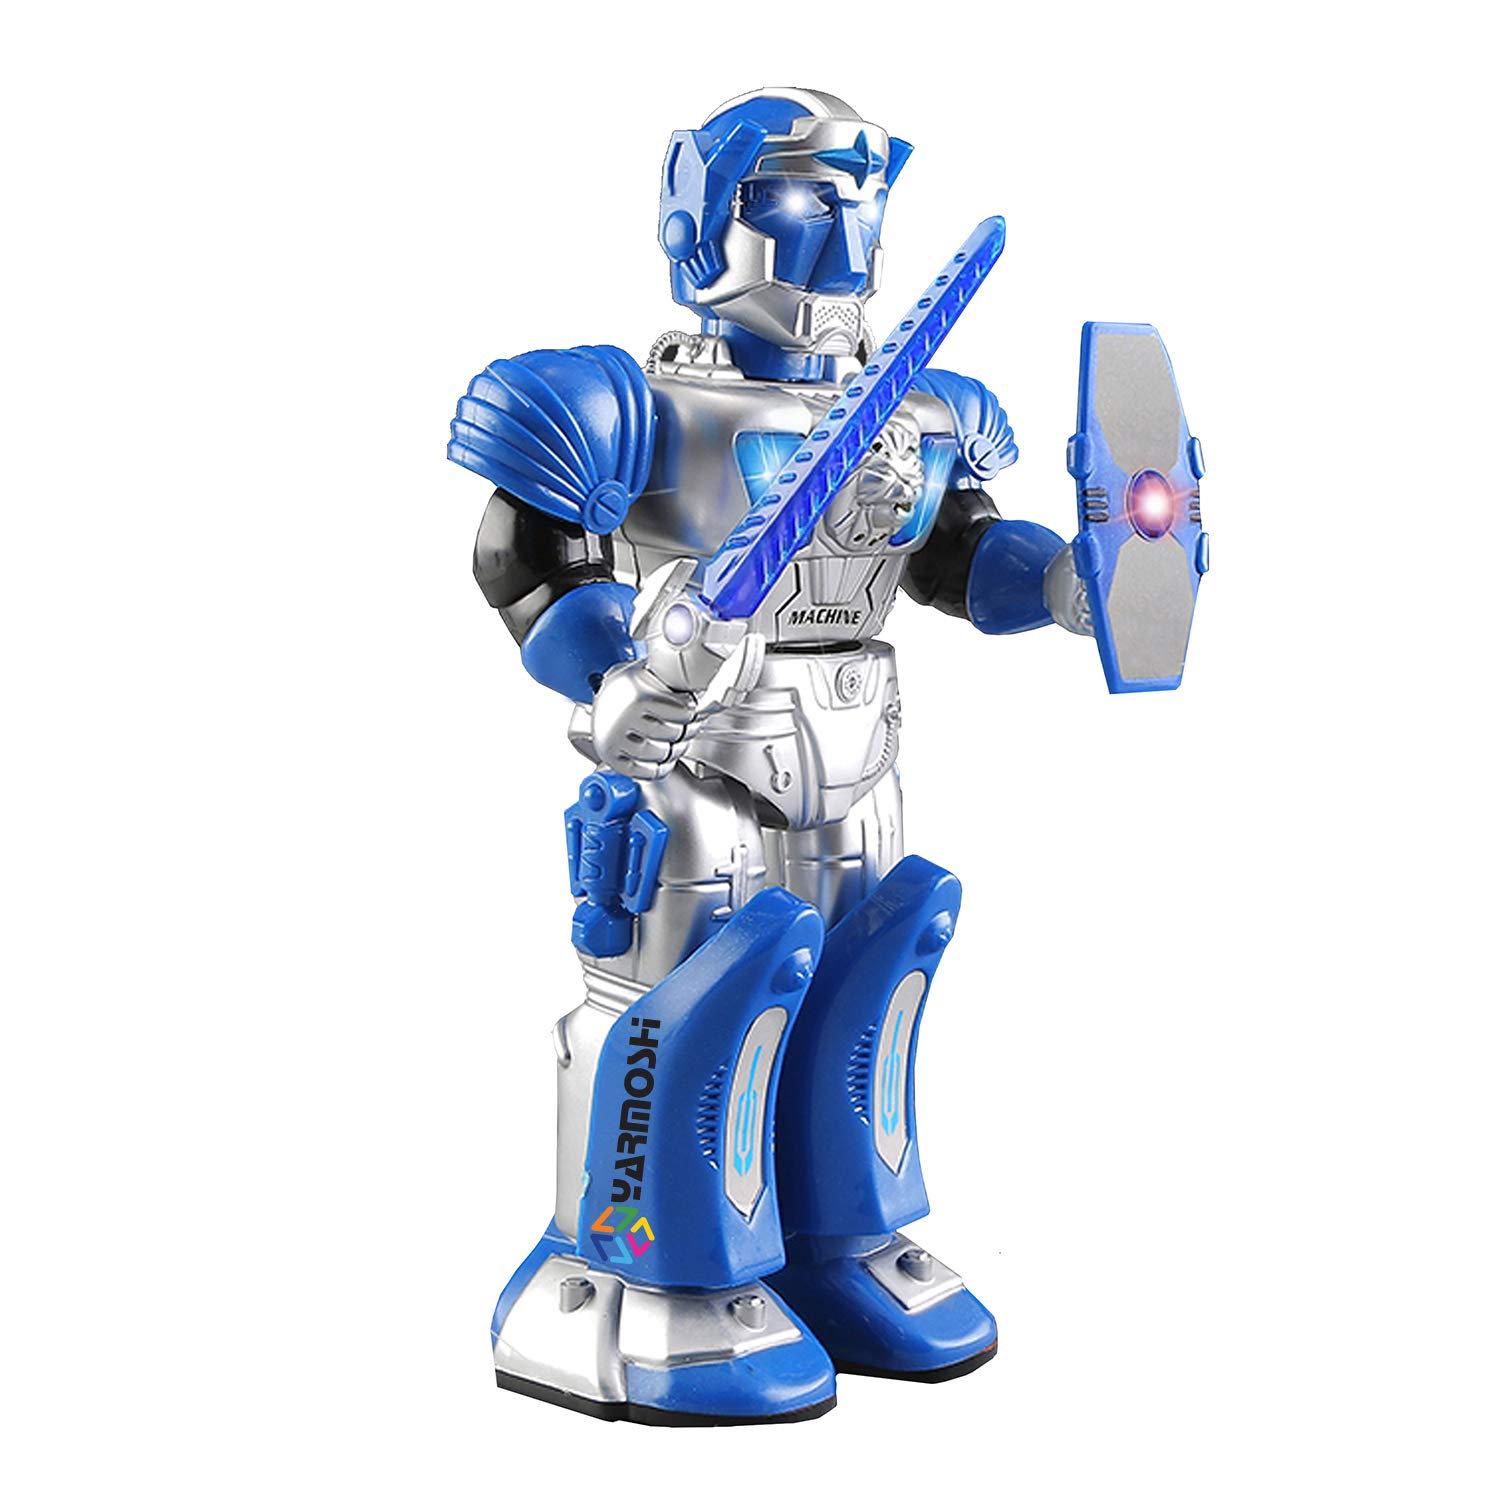 YARMOSHI Walking Robot - Toy with Toy Gun and Firing Sounds. Battery Operated, Has Moving Arms and Flashing Lights. Makes Battle Sounds and Talks. Fun Gift for Girls and Boys Age 2+. (Blue Warrior)